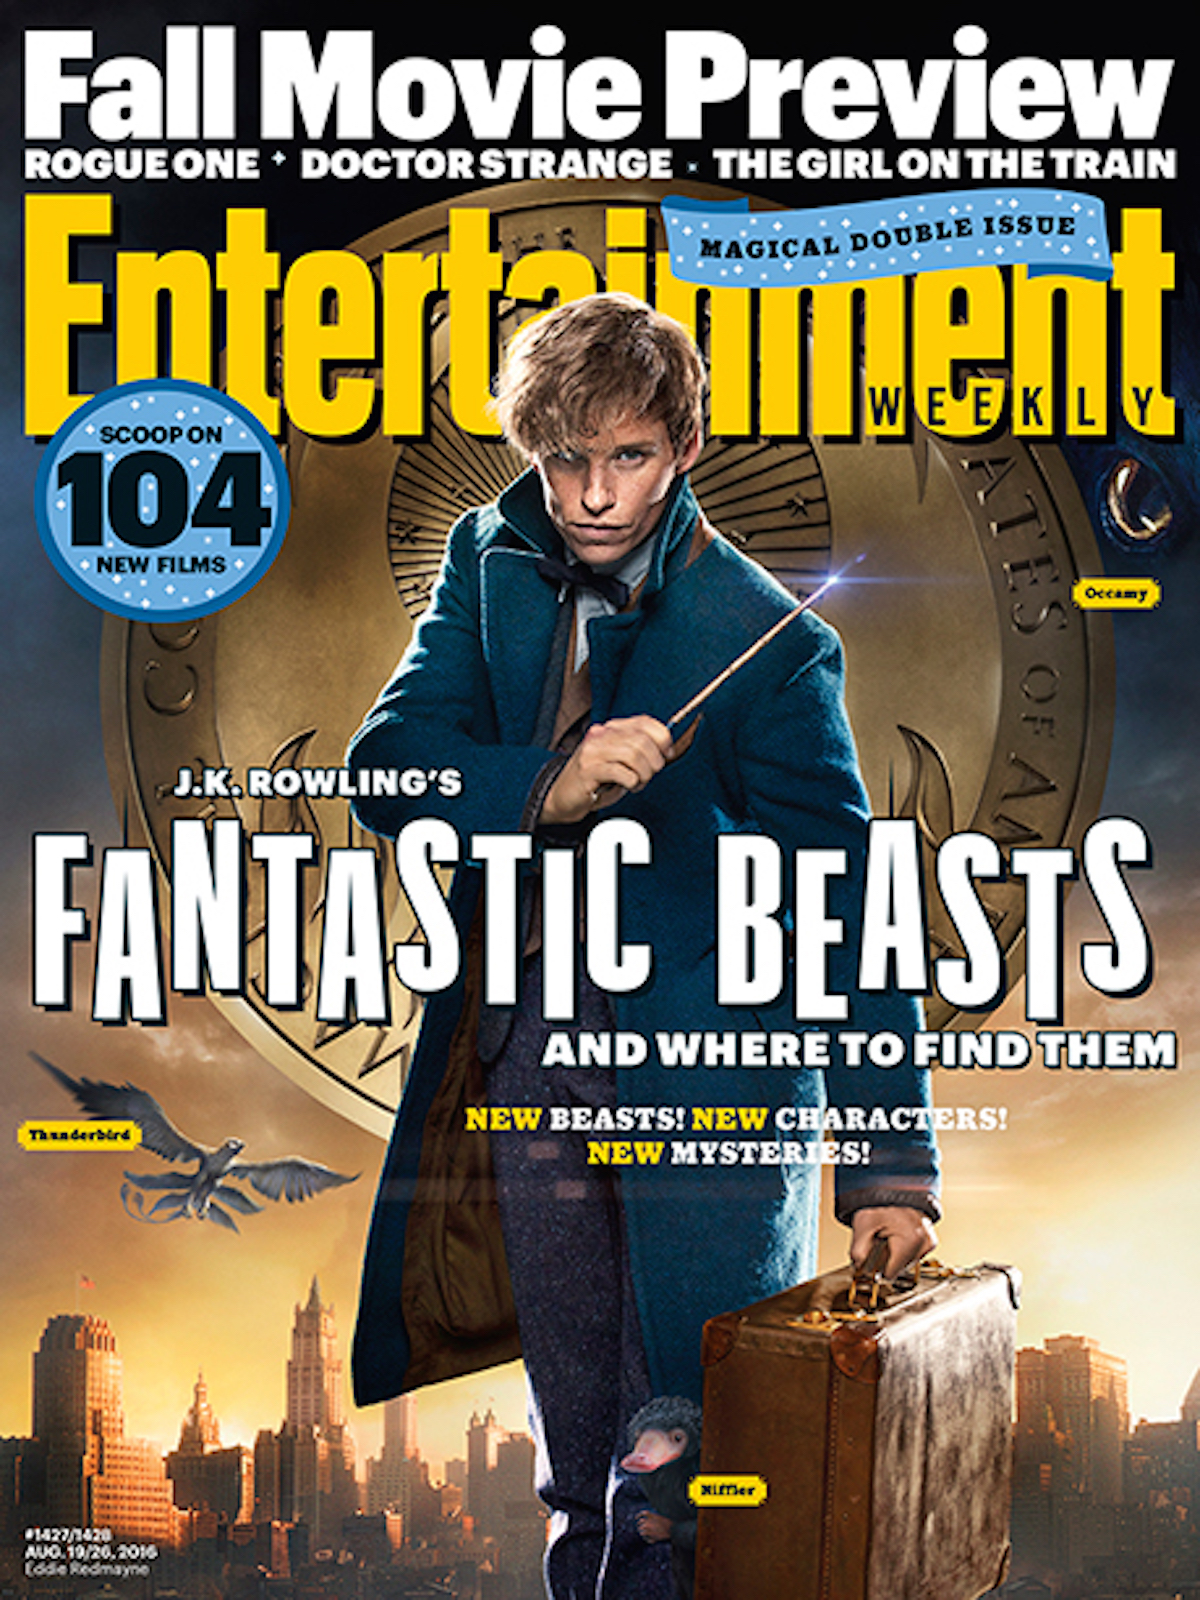 Fantastic beasts ew cover